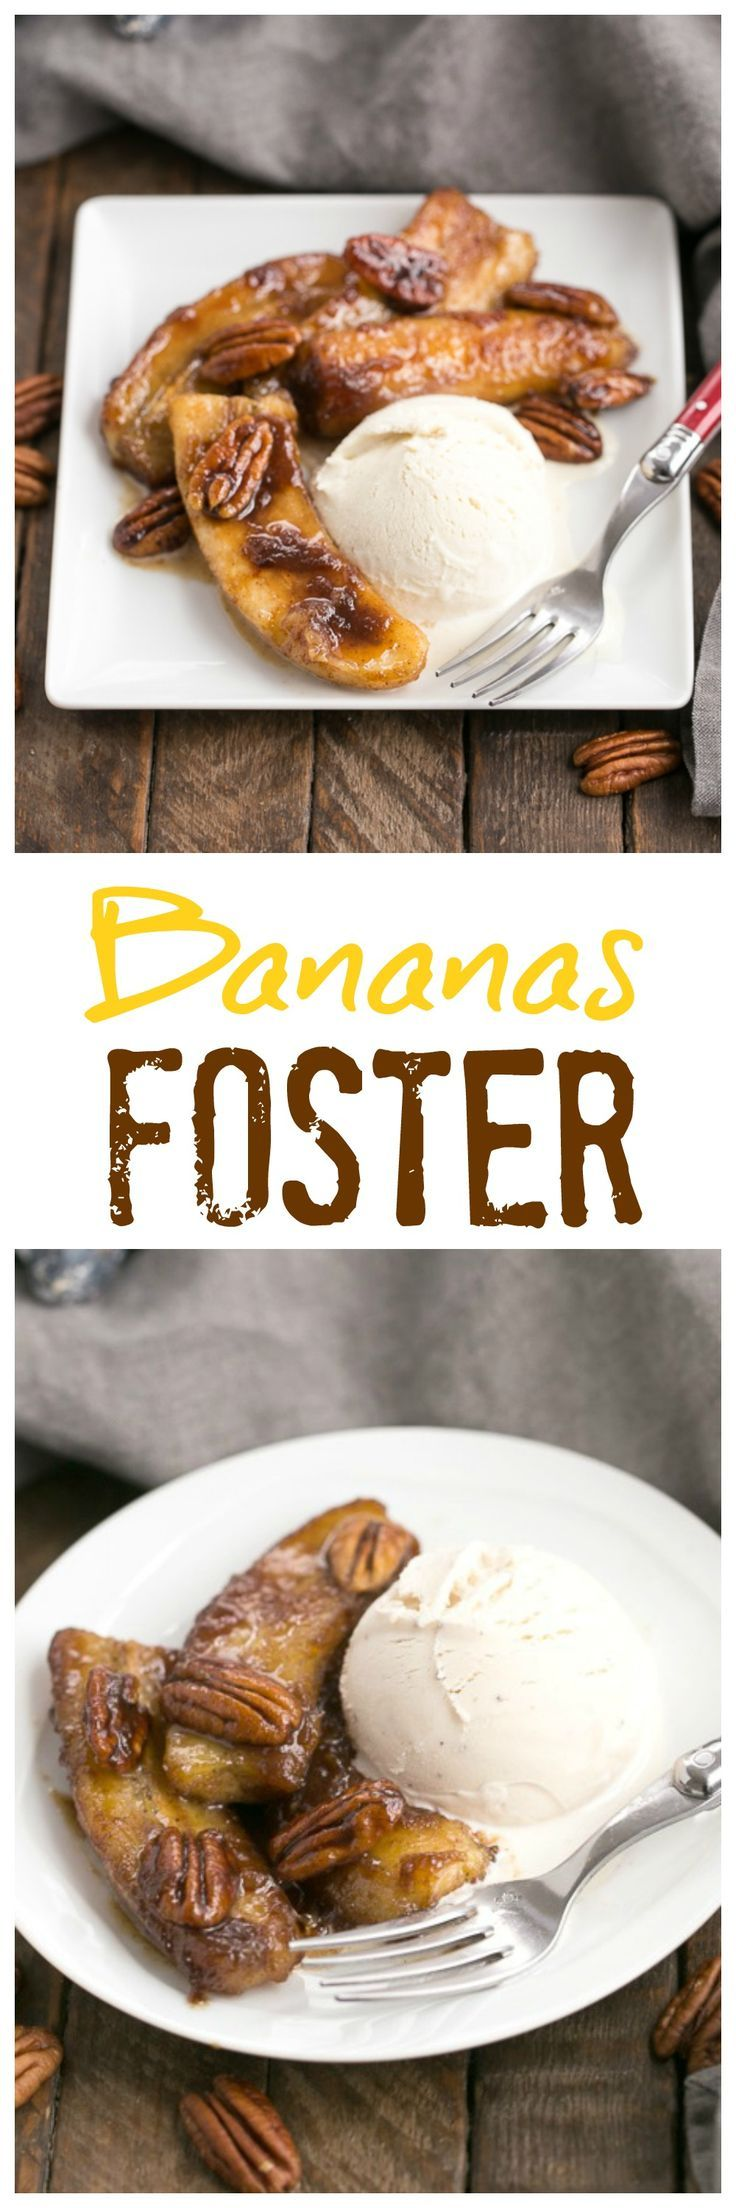 Bananas Foster | A simple, classic New Orleans dessert. Perfect for Mardi Gras! @lizzydo #SundaySupper